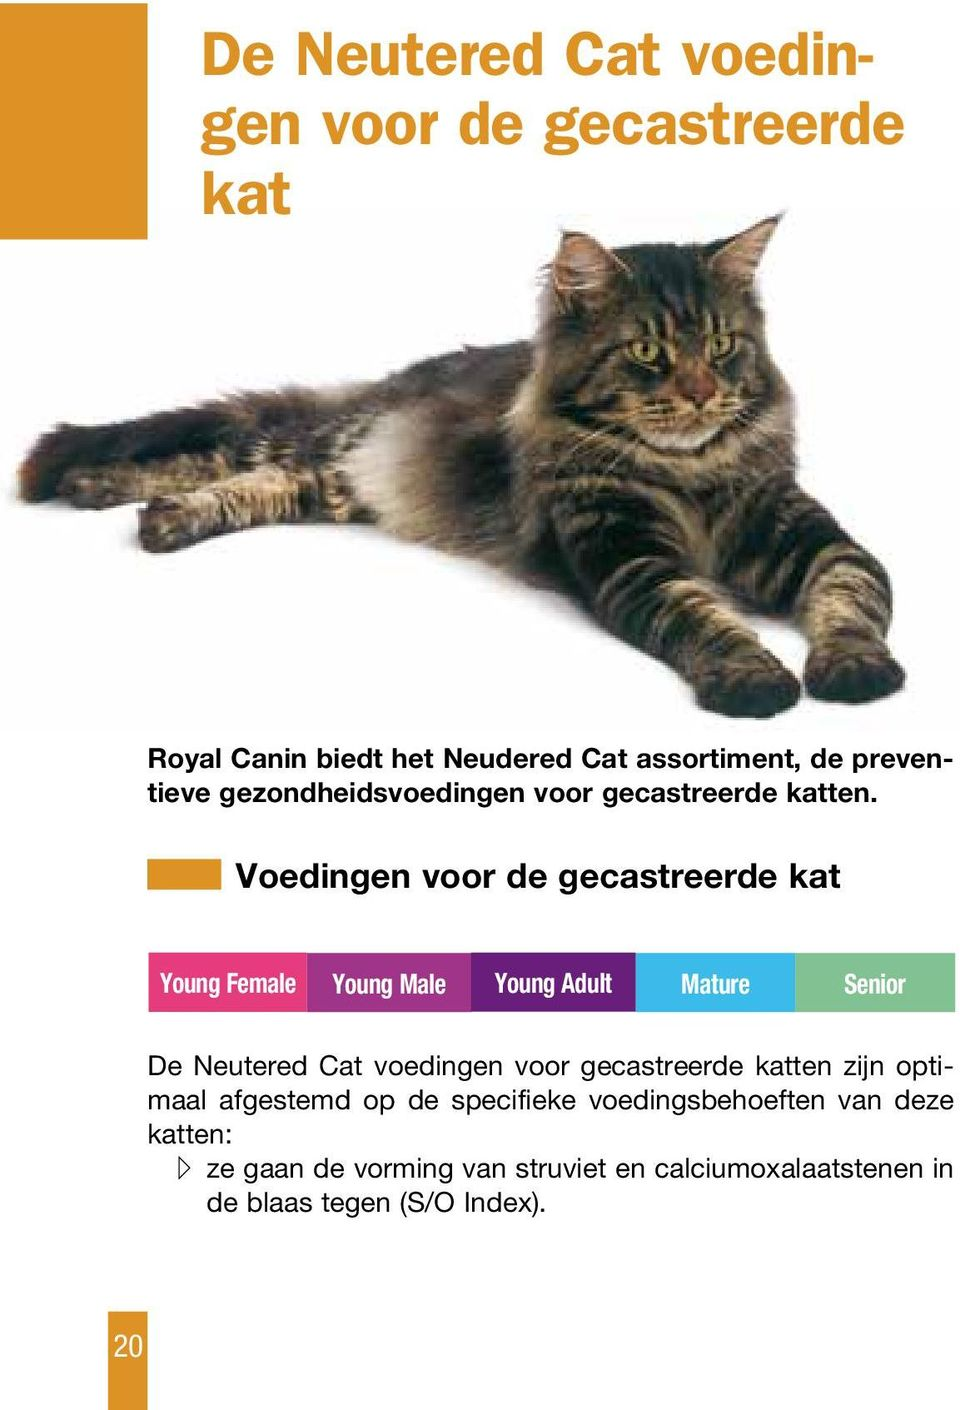 Voedingen voor de gecastreerde kat Young Female Young Male Young Adult Mature Senior De Neutered Cat voedingen voor